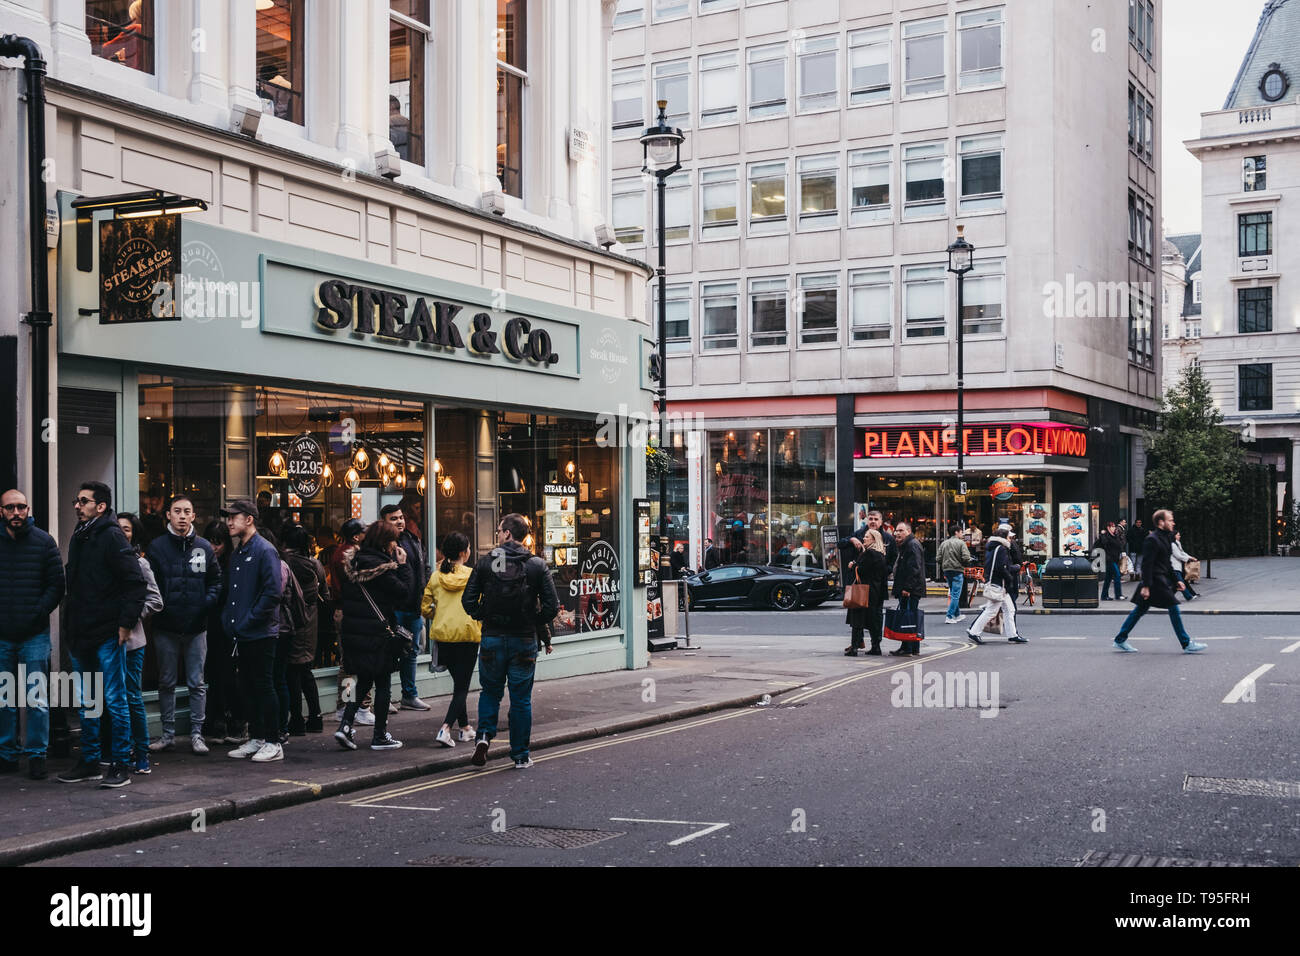 London, UK - April 14, 2019: People walking past Steak & Co restaurant on the corner of Haymarket, a street in the St. James's area of London, famous  - Stock Image